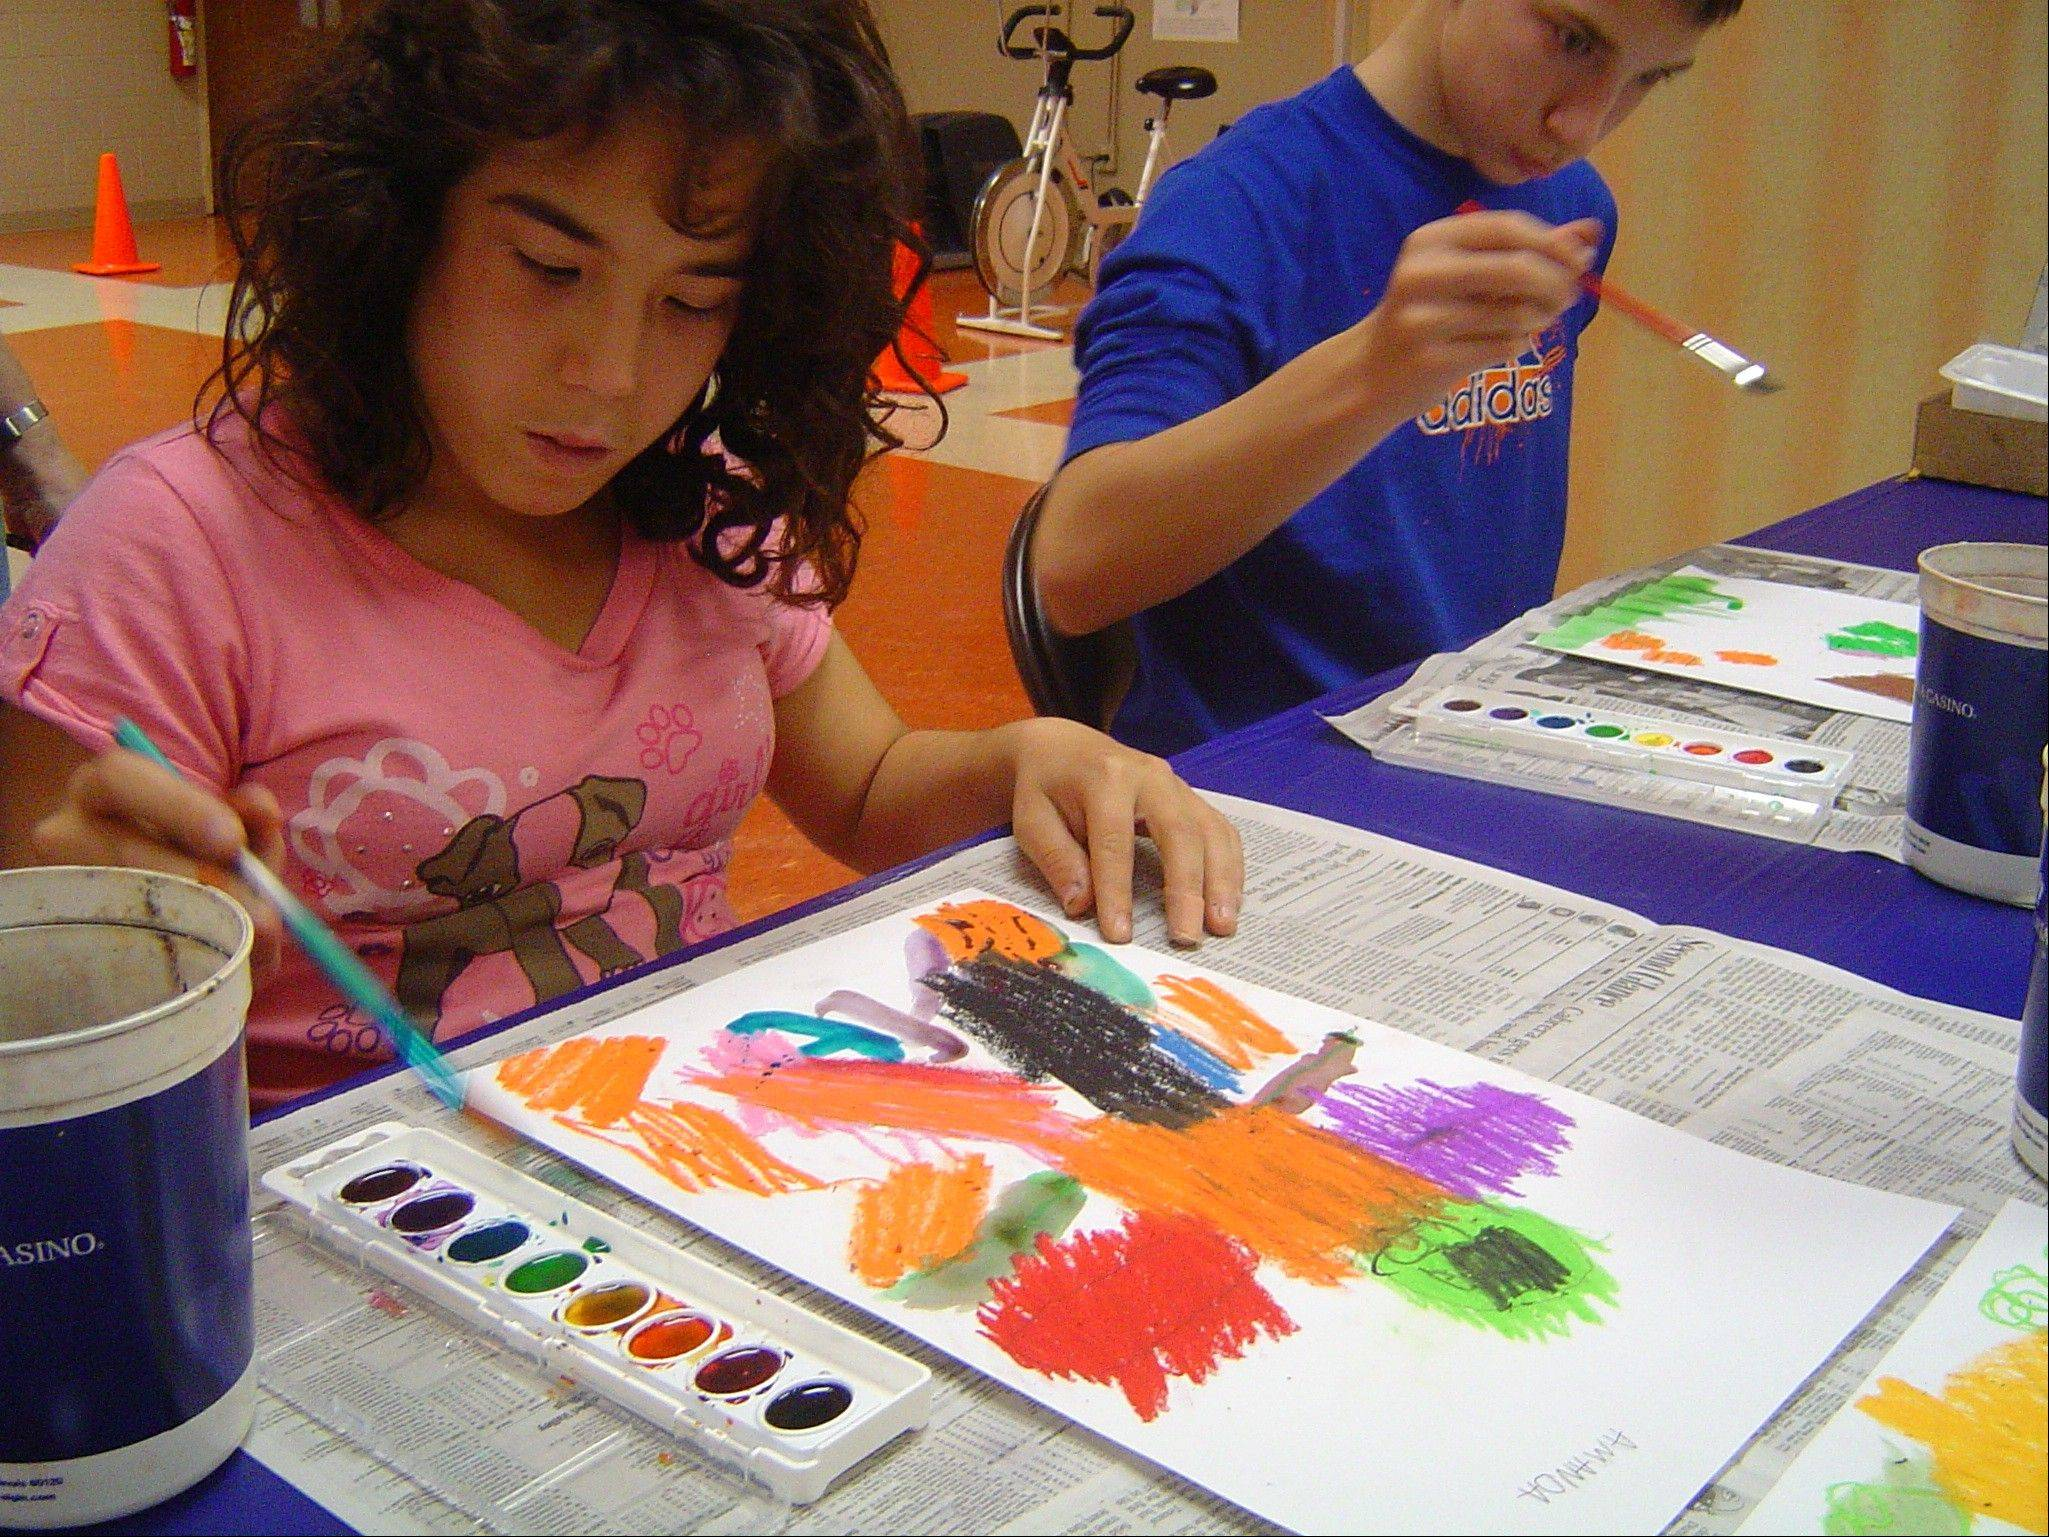 Amanda Lyubelsky, left, of Carol Stream and Tim Hayes of Wheaton paint scarecrows at a Tuesday art program.